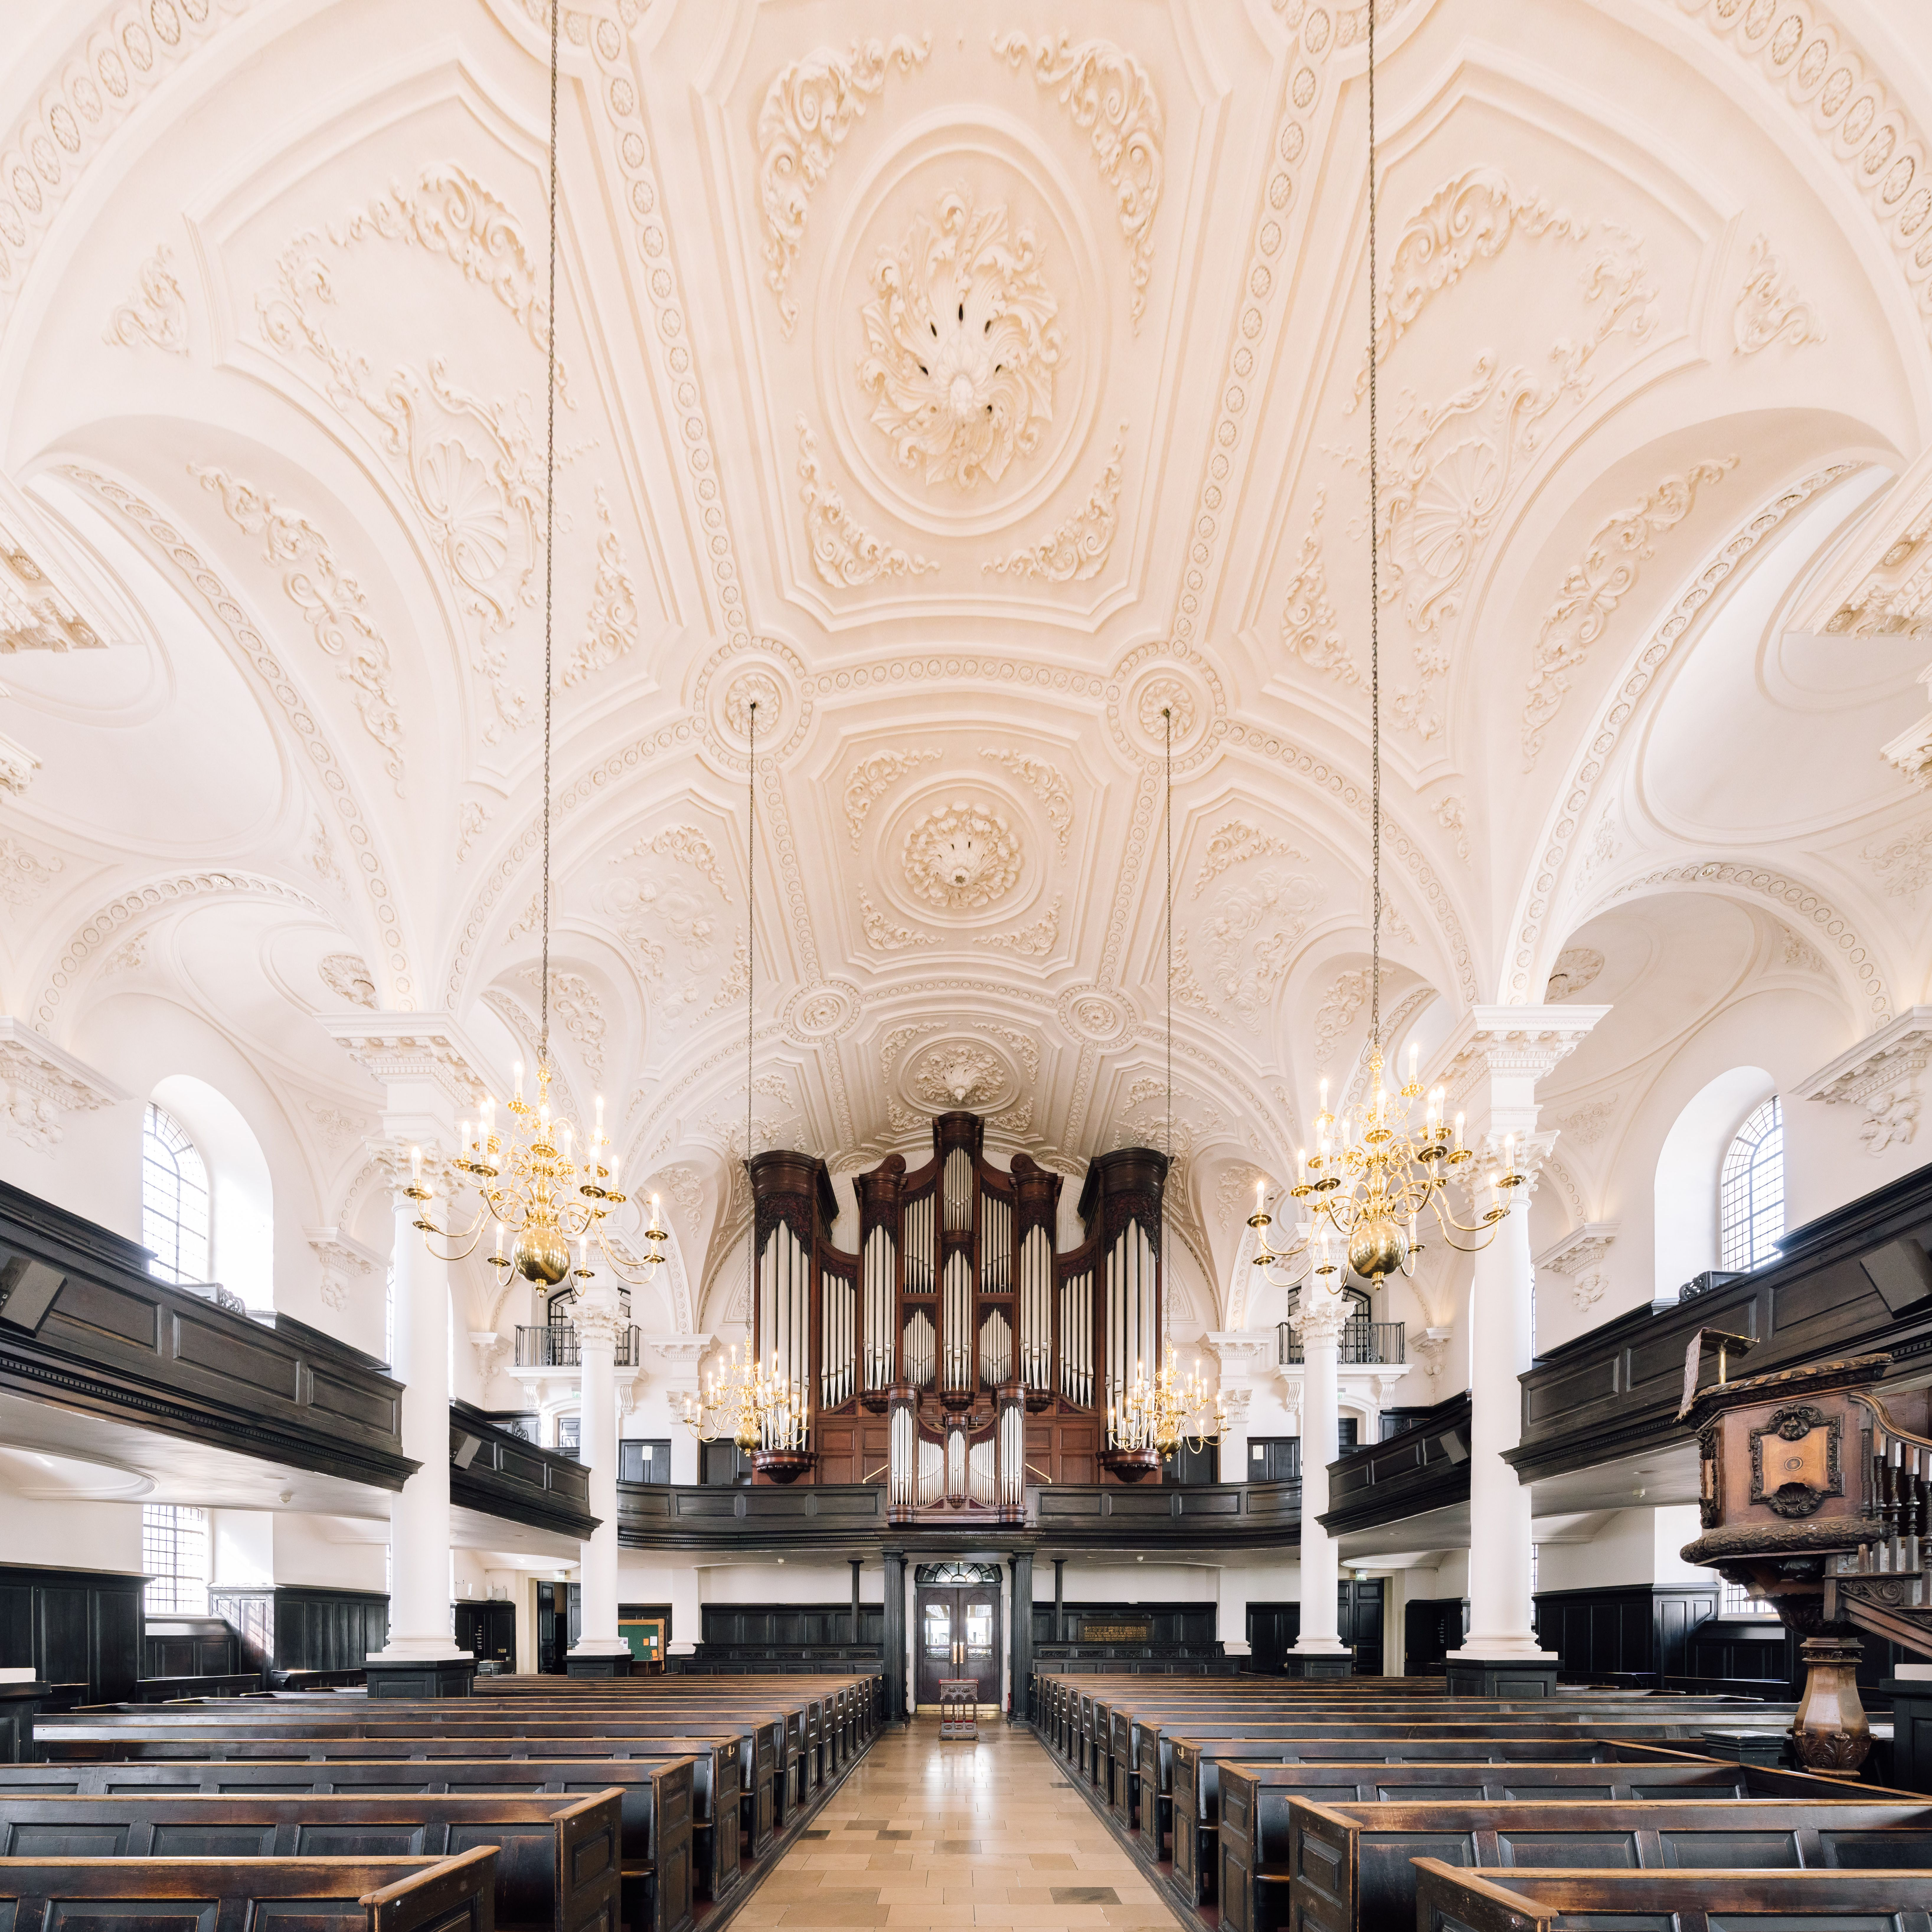 Interior of St. Martin-in-the-fields with dark brown pews and a white domed ceiling